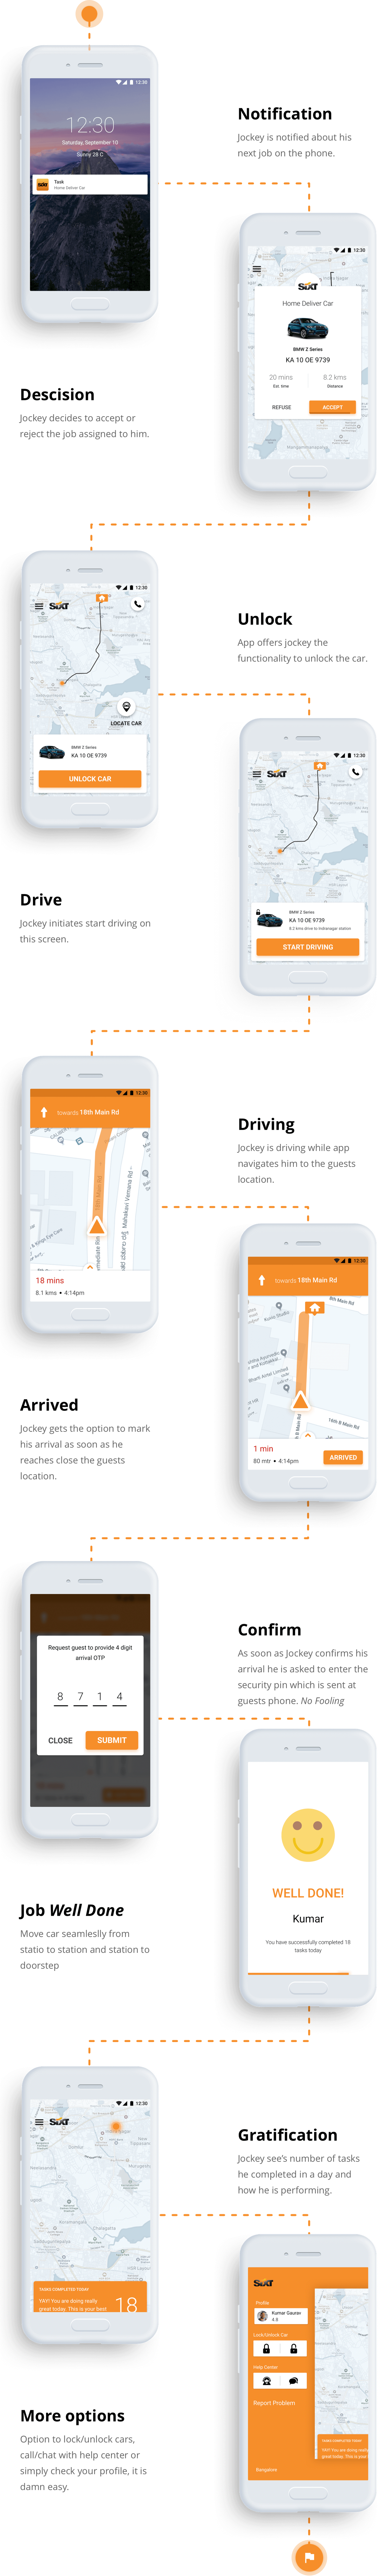 SIXT - App Design and Flow